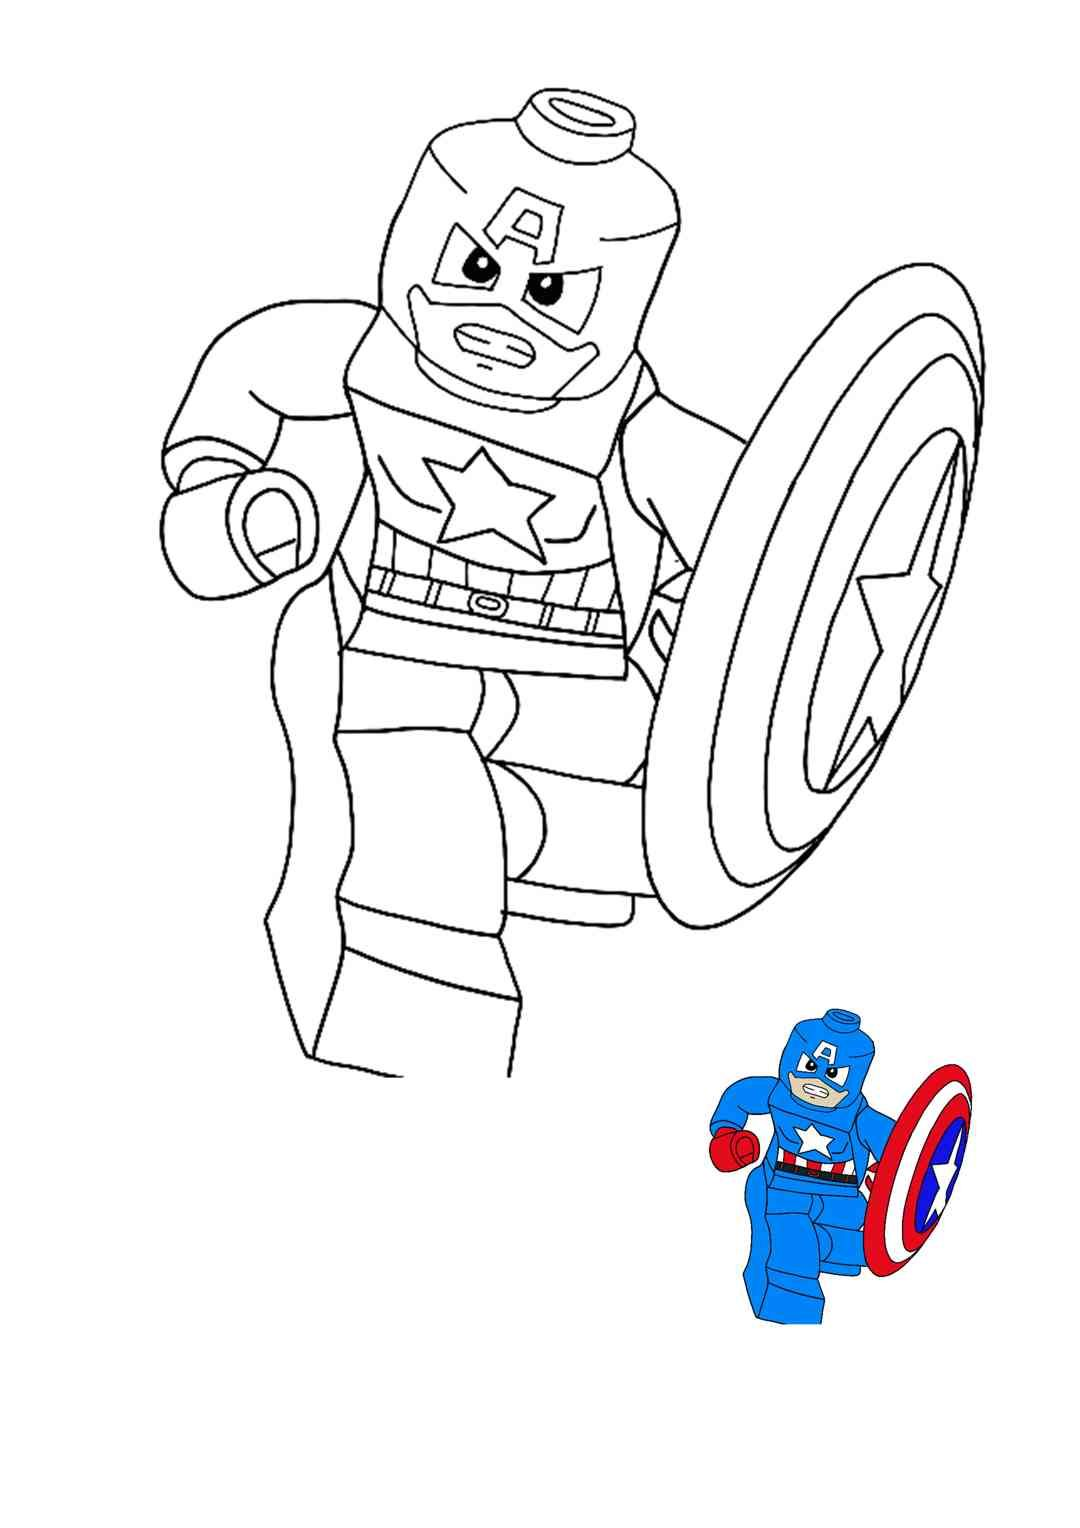 Lego Captain America Coloring Pages Captain America Coloring Pages Free Printable Coloring Sheets Lego Coloring Pages